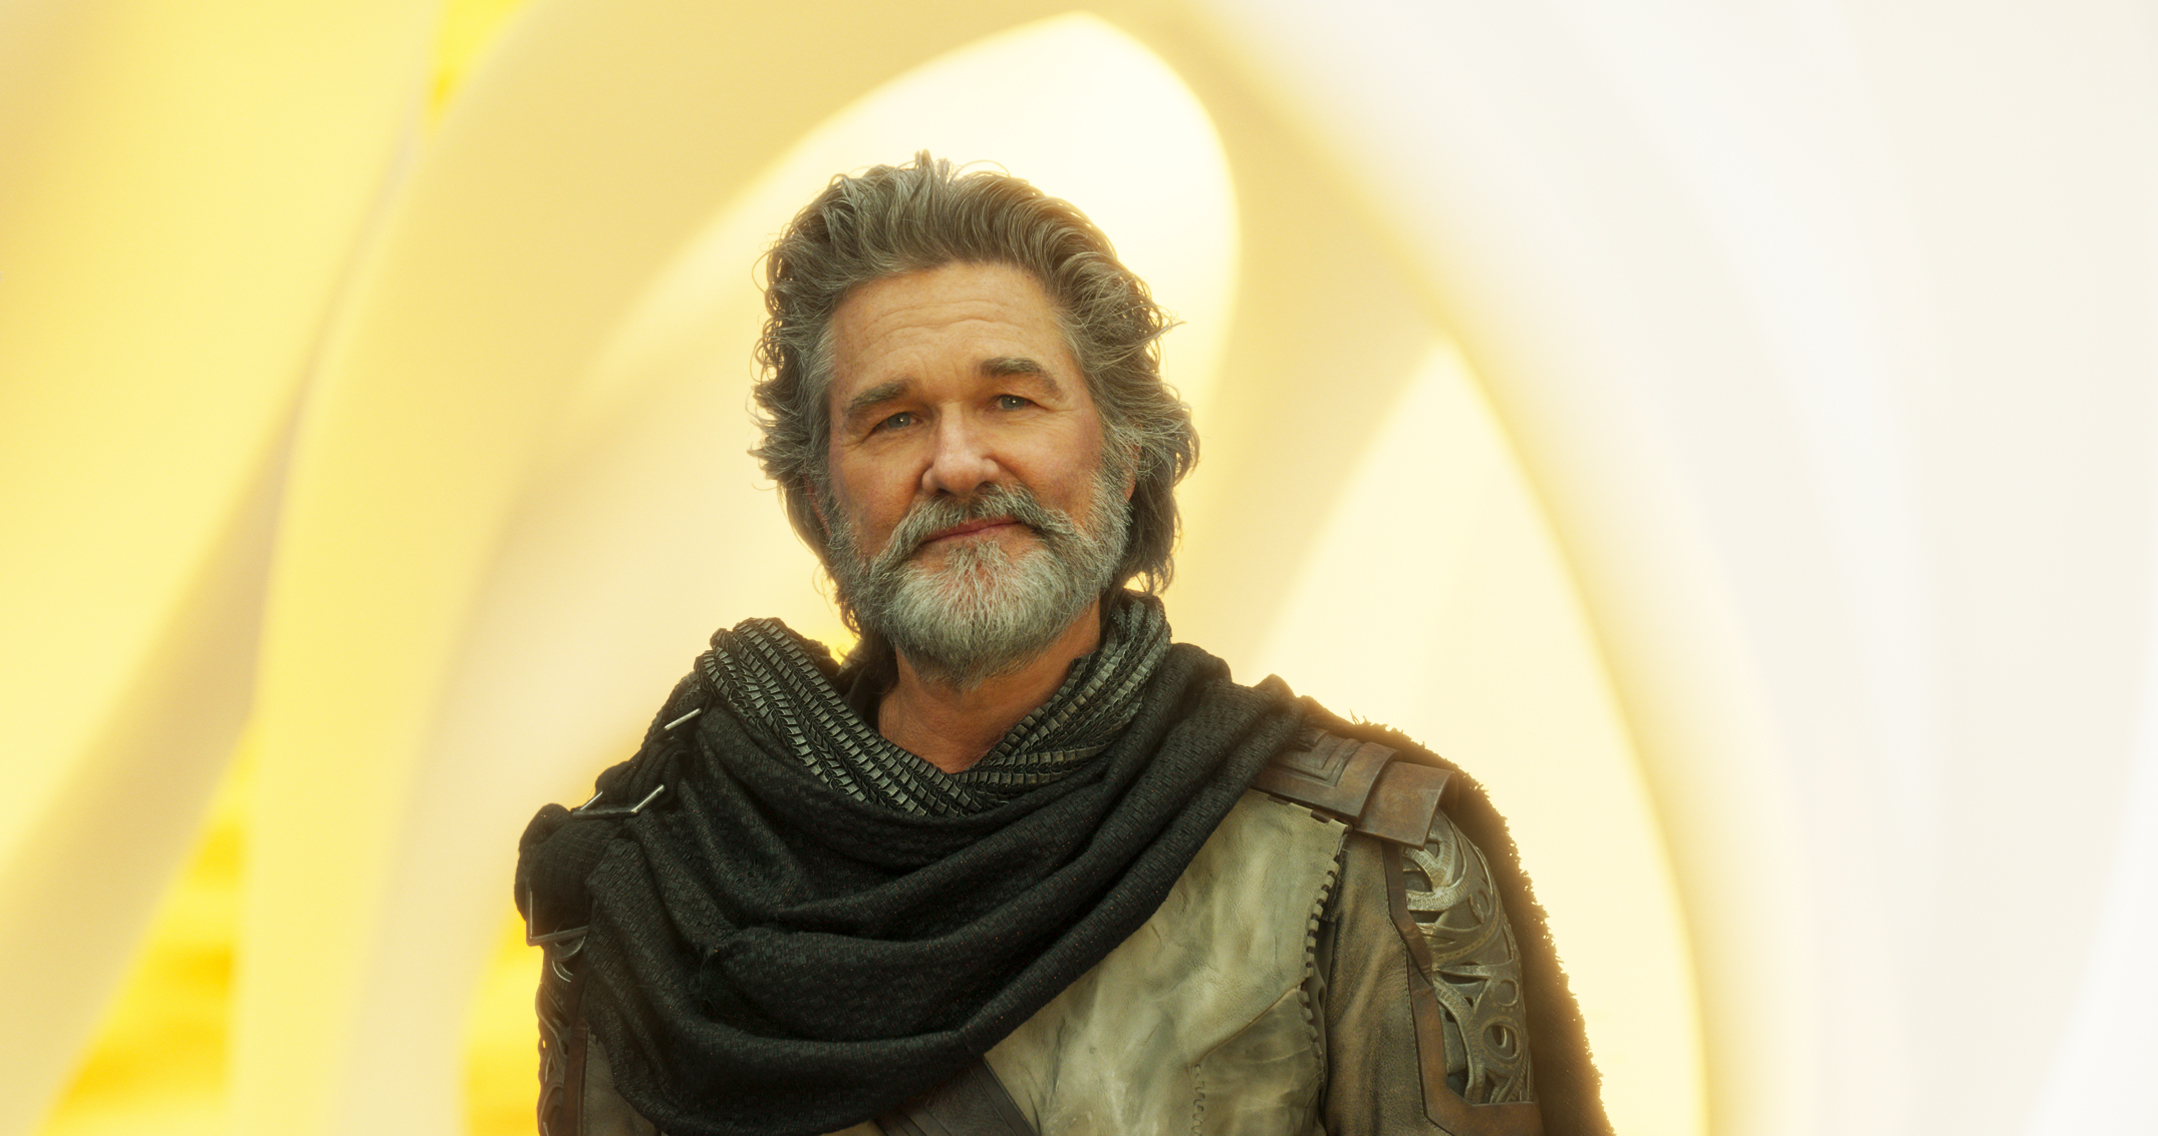 Ego, portrayed by Kurt Russell in Guardians Of The Galaxy Vol. 2.